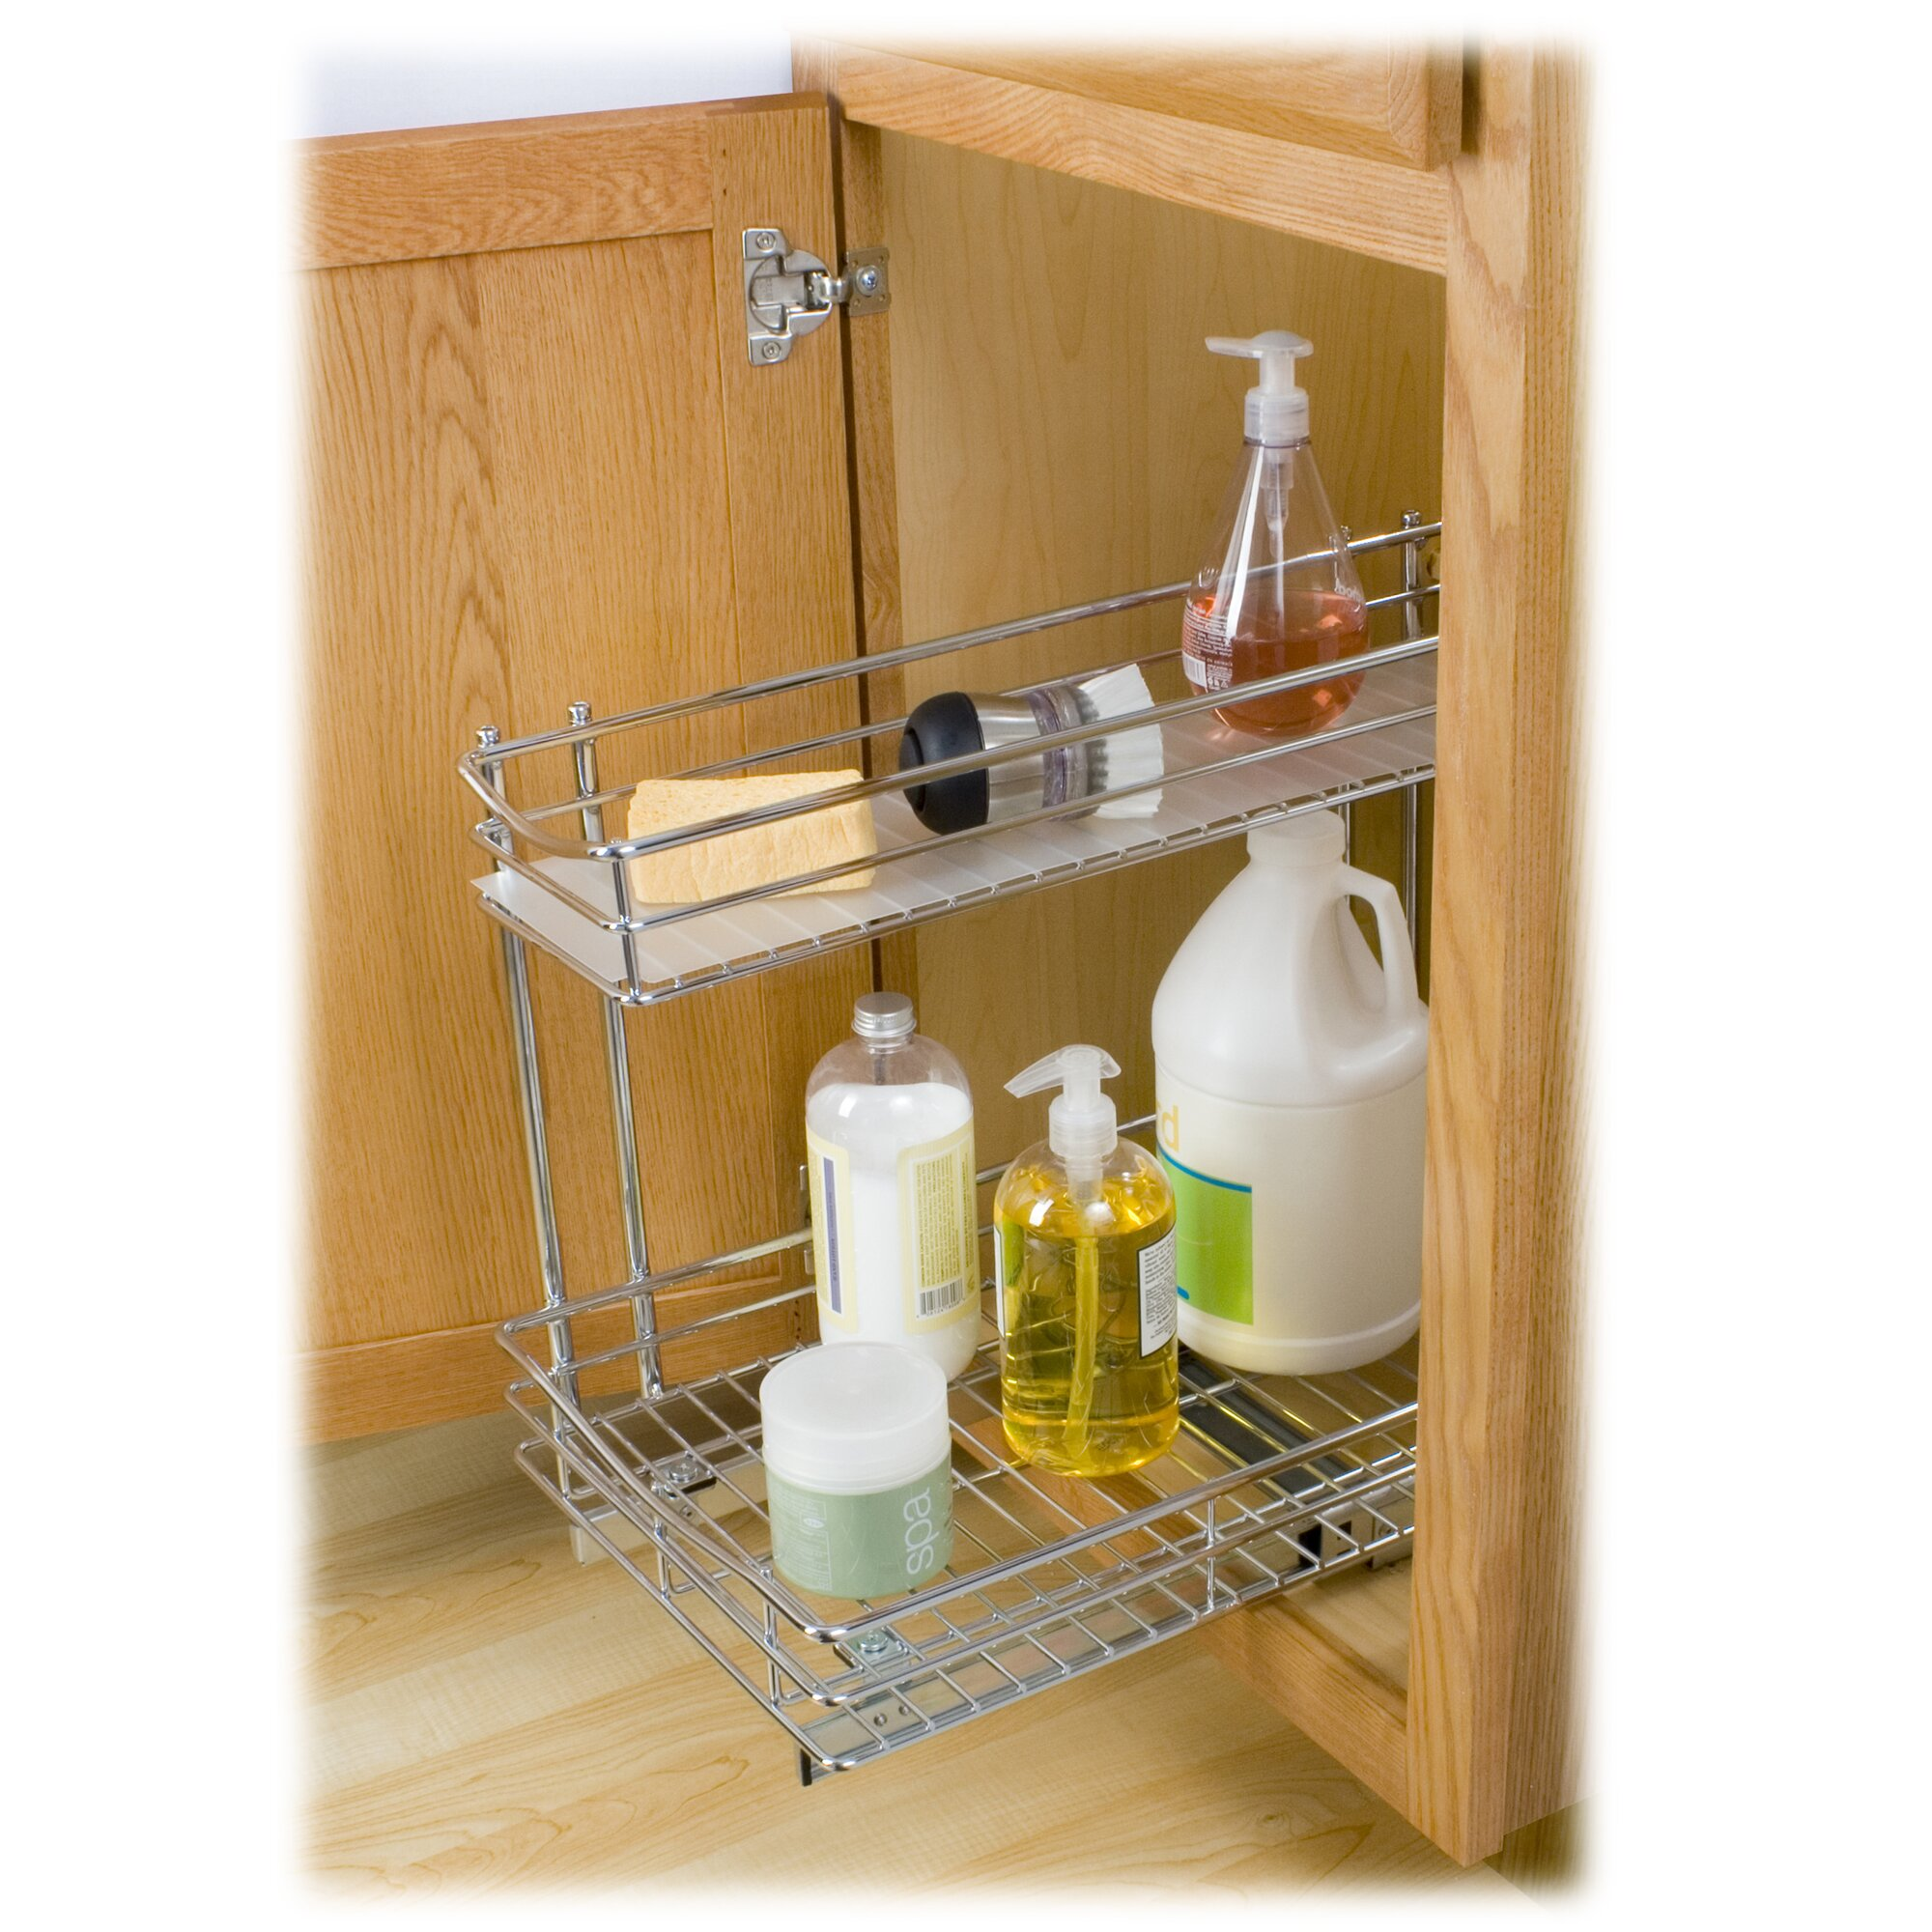 Lynk Roll Out Under Sink Cabinet Organizer - Pull Out Two Tier ...